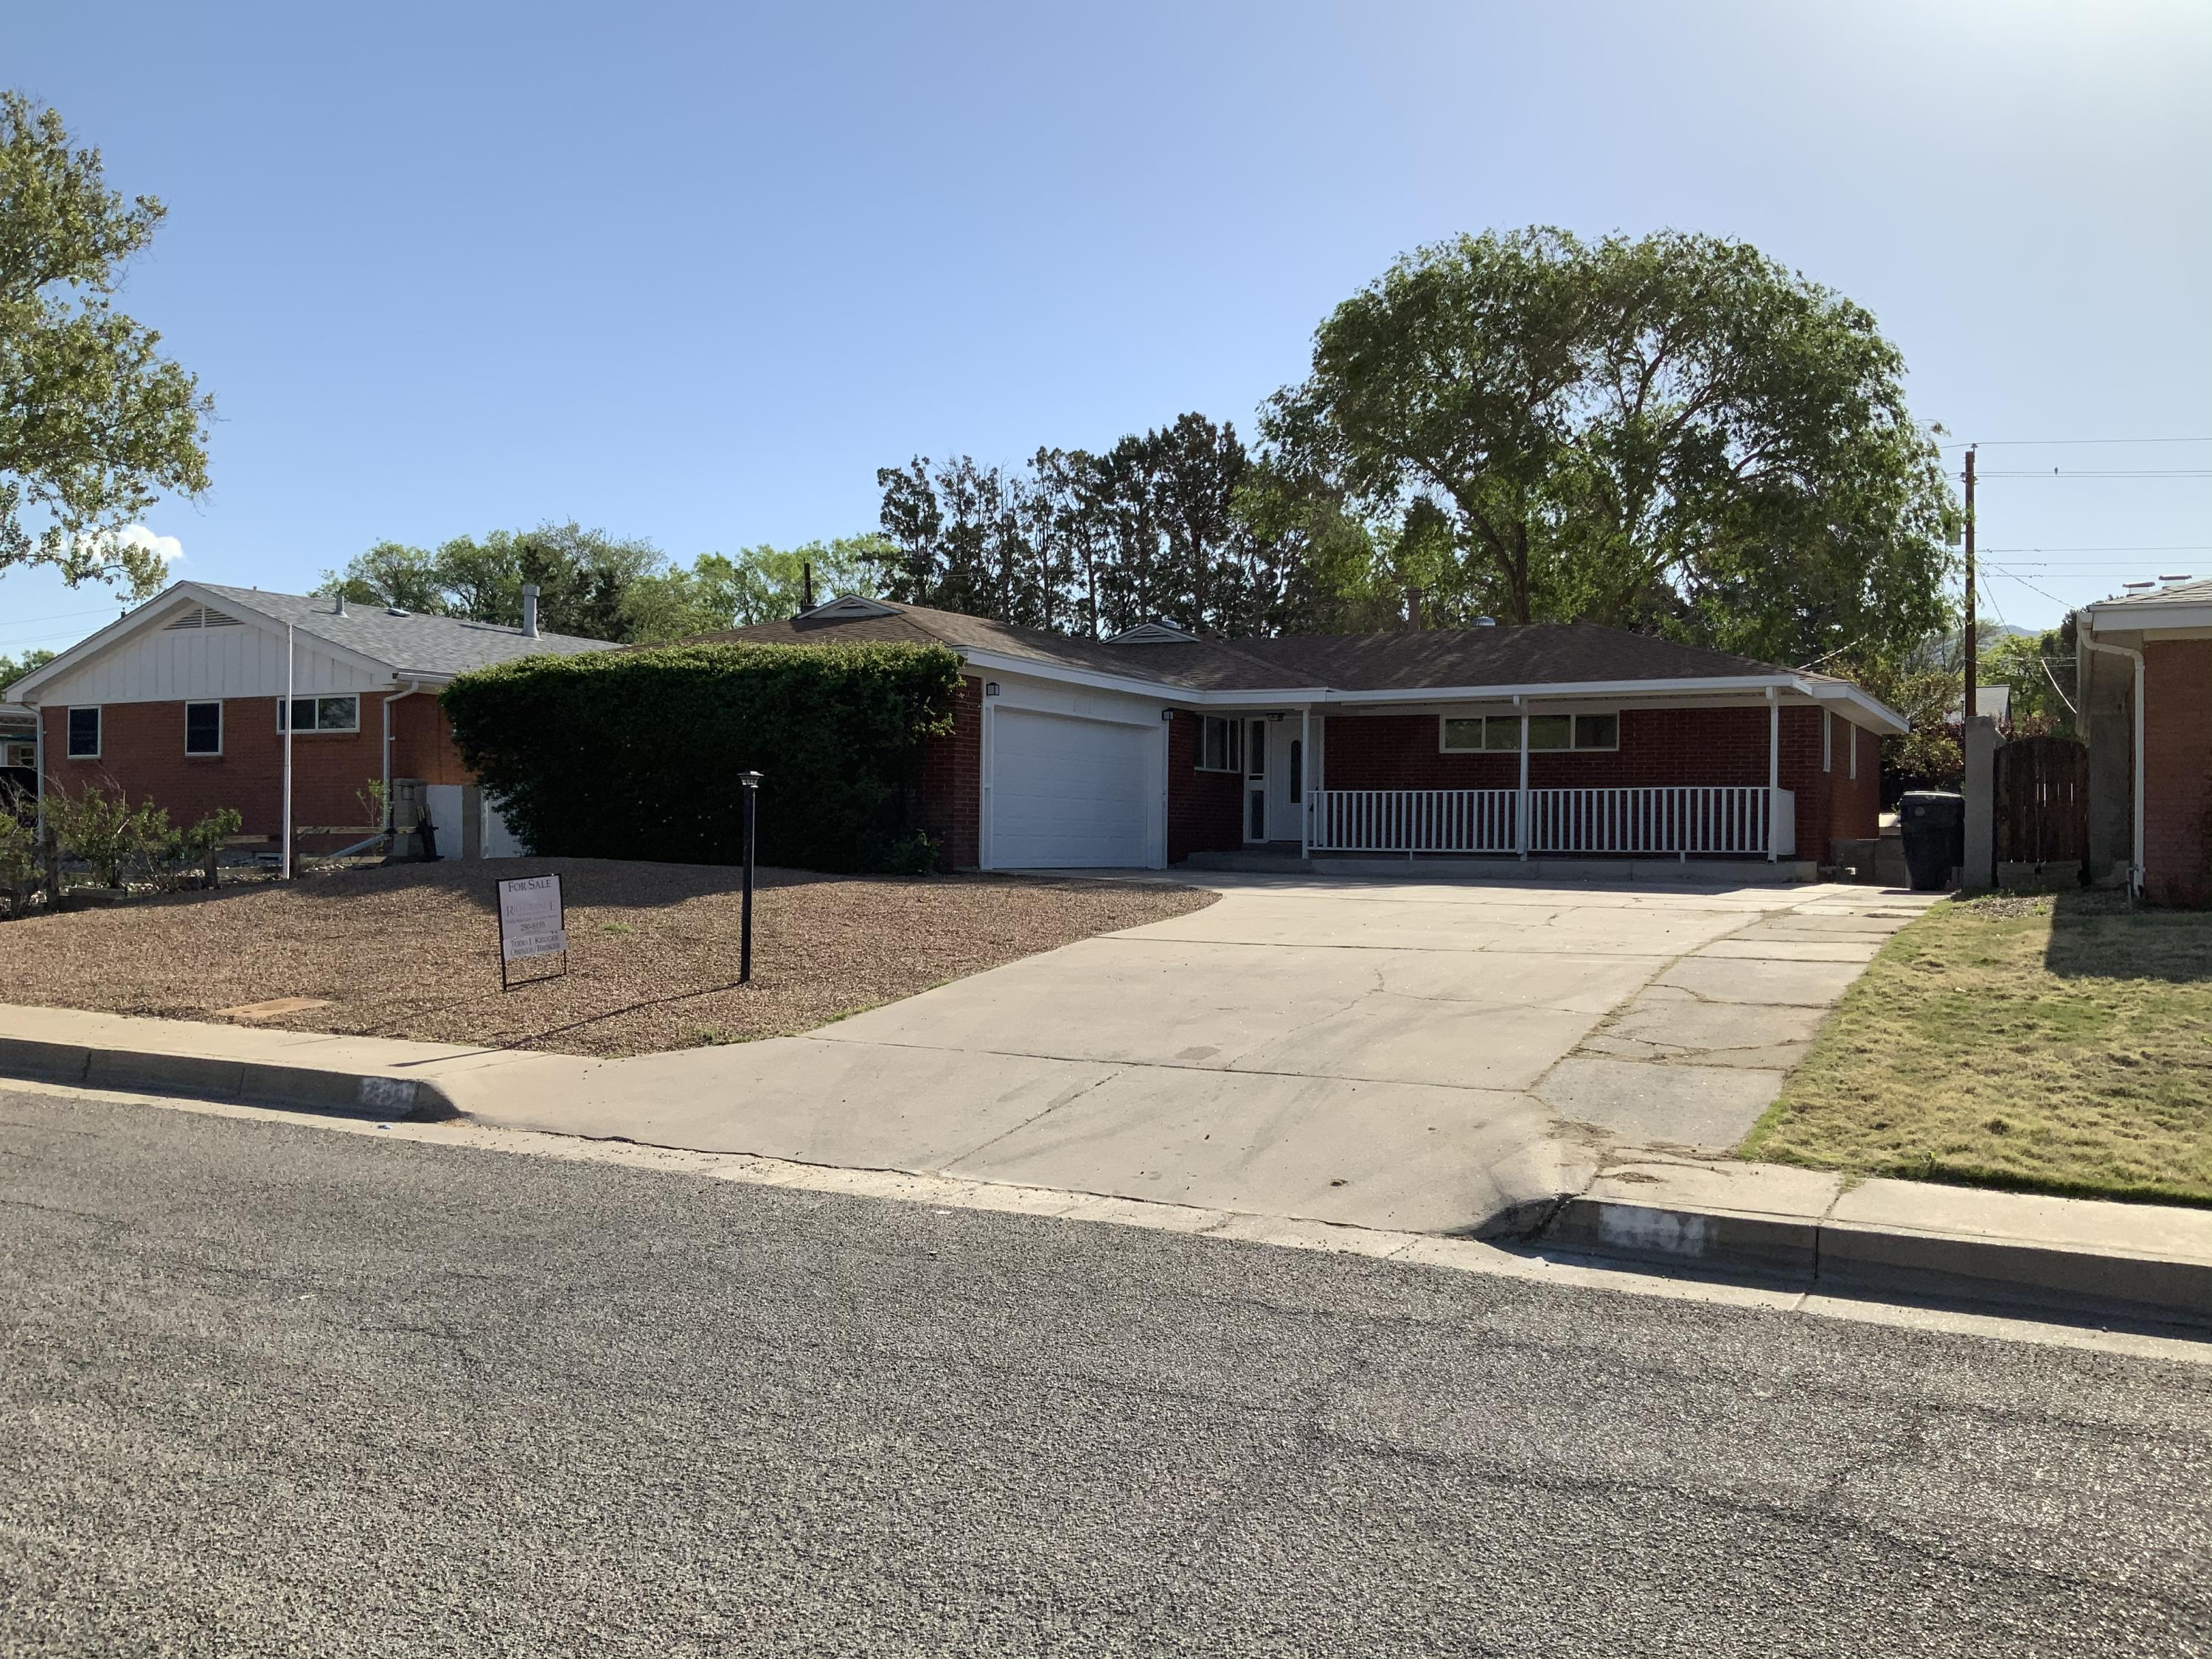 Another amazing remodel by Rio Grande! EVERYTHING in this home has been freshly updated and it is ready to move into today!!!  Mid-century modern, with contemporary colors and style throughout. New Roof 2018, Vinyl Windows, Furnace 2019, NEW A/C, Paint, Stainless Appliance Package.  Shaker cabinets w/metal pulls.  BEAUTIFUL WOOD FLOORS!  New Electrical & Plumbing Fixtures, Hardware & Ceiling Fans. Finished Basement w/ huge 2nd Living area.  Additional large space could be 5th bedroom or rec. room.   Nothing left to do here but move in! Come see this new one today, it will not last long.